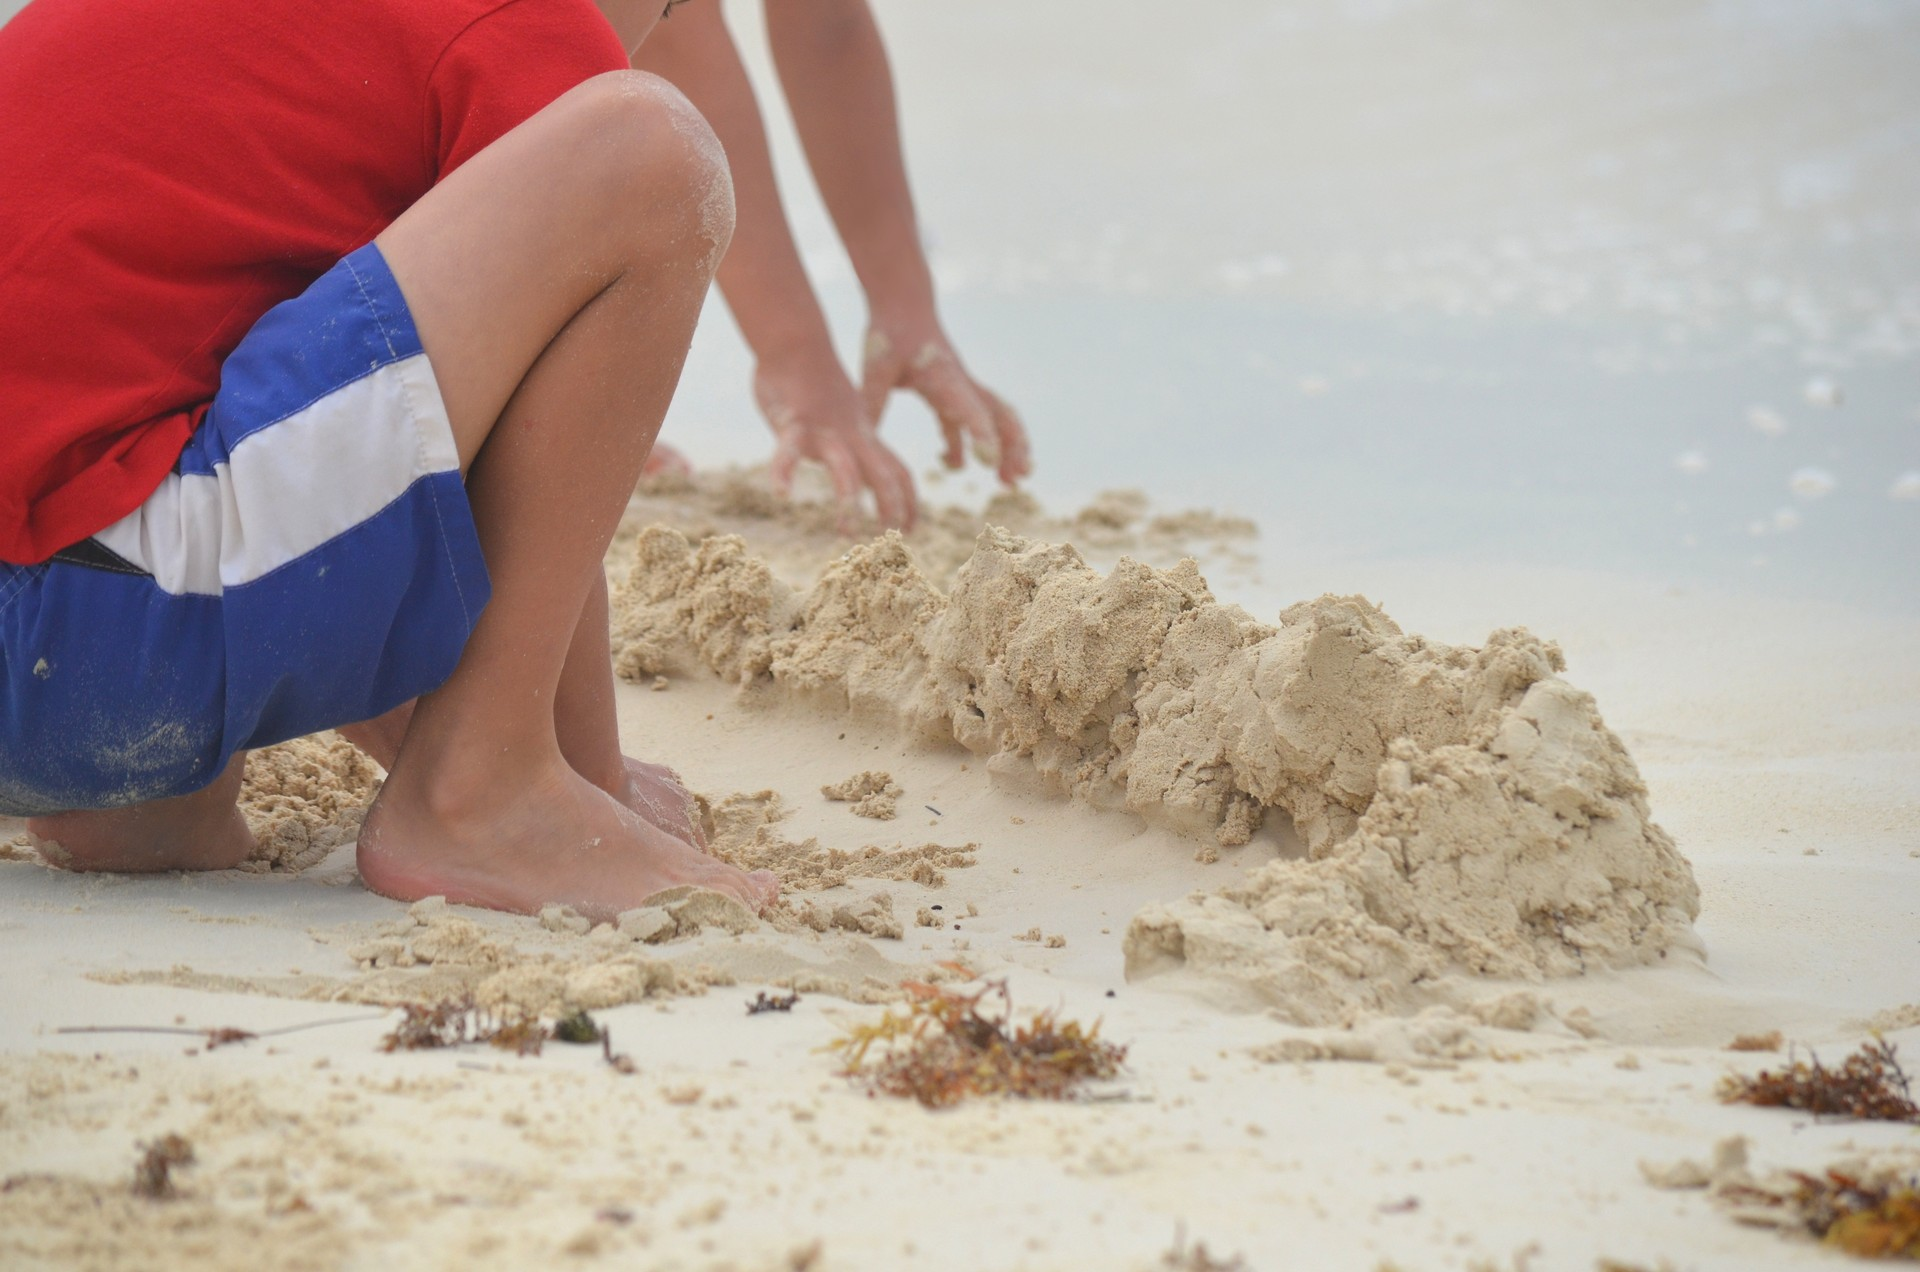 Two boys playing on the beach in Cuba